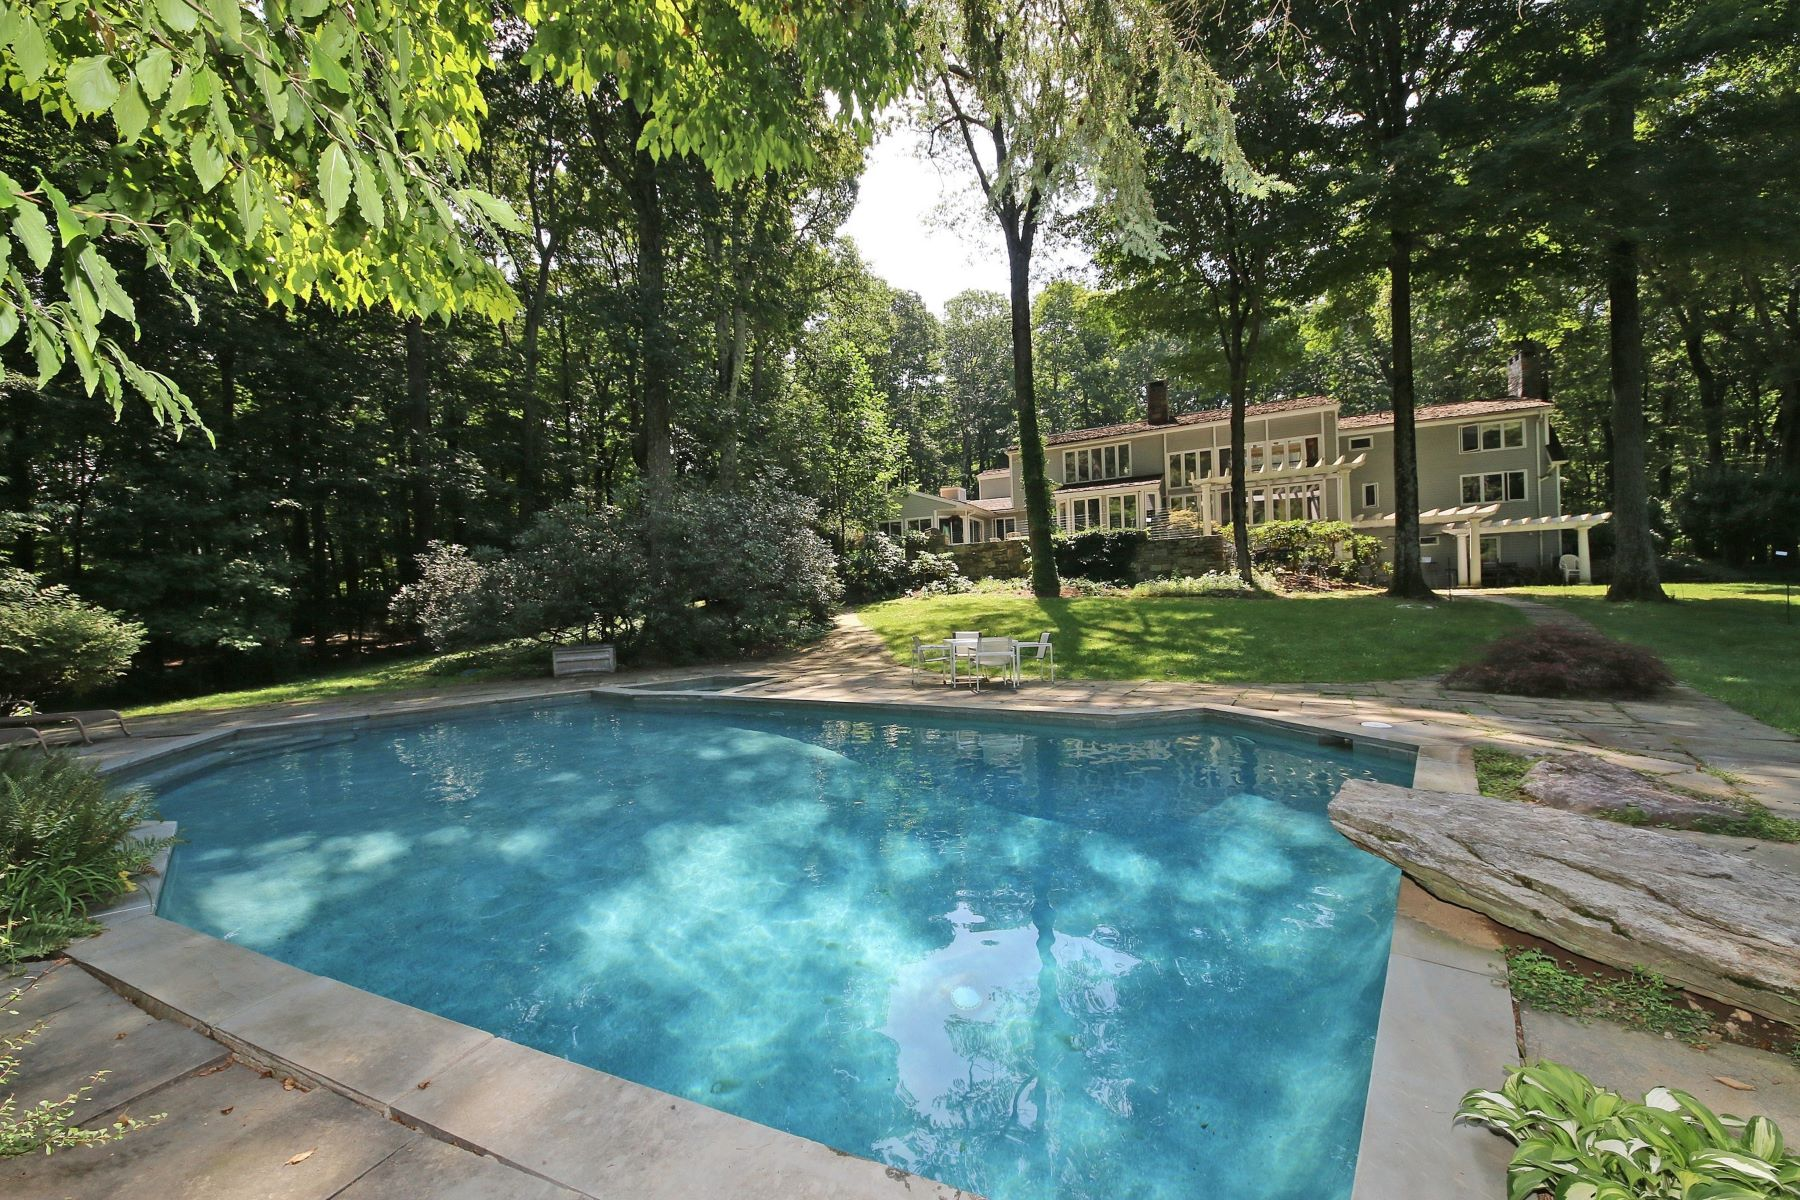 Single Family Home for Sale at Sensational Resort-like Home 99 Topstone Road Redding, Connecticut 06896 United States